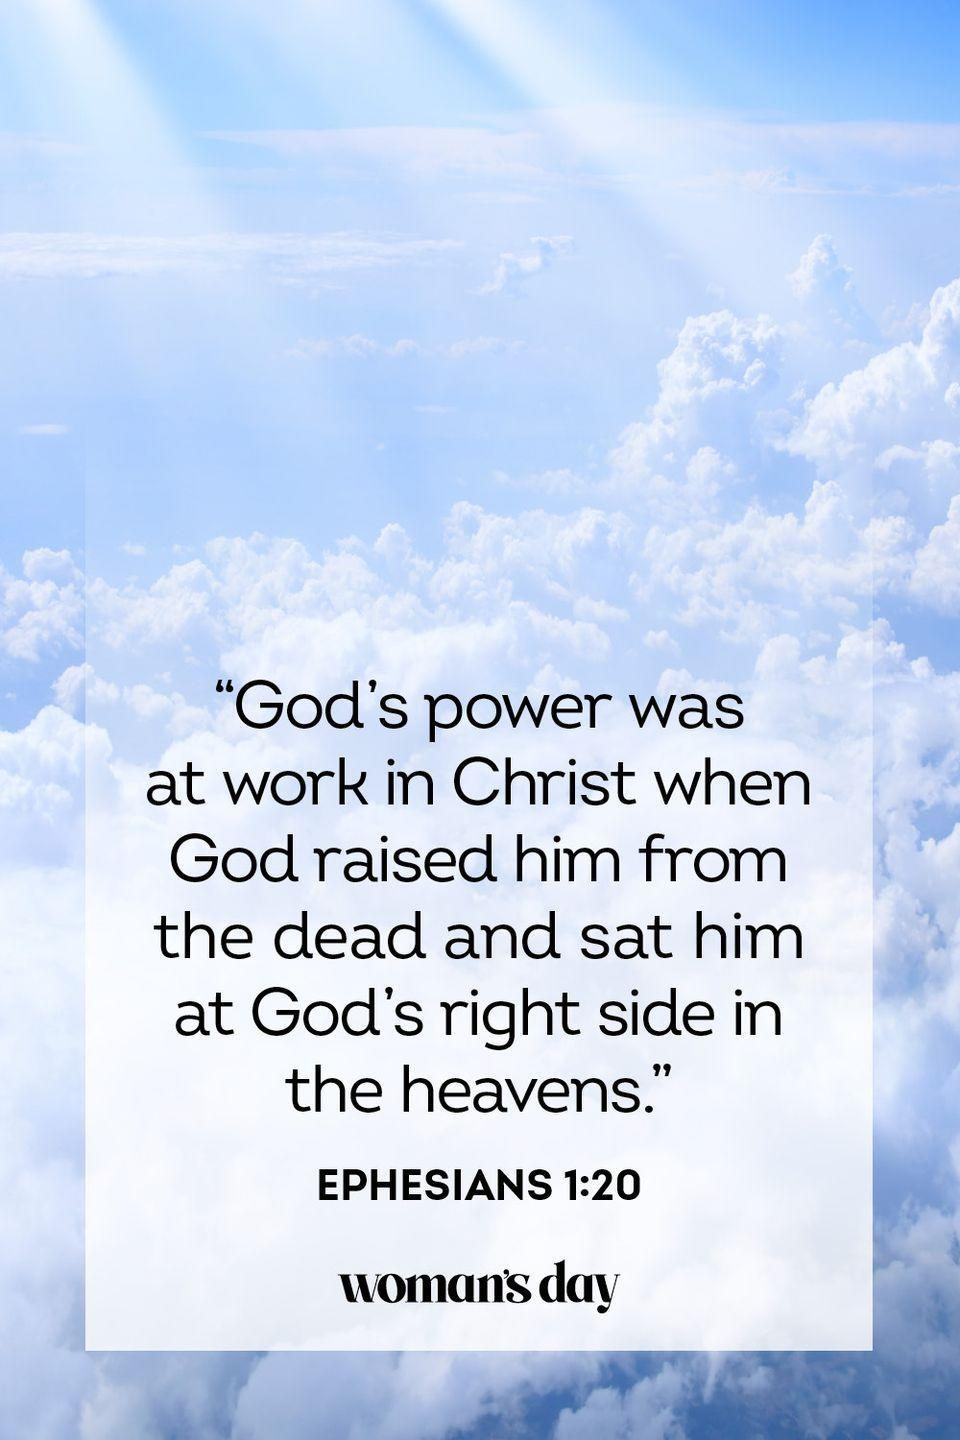 "<p>""God's power was at work in Christ when God raised him from the dead and sat him at God's right side in the heavens."" — Ephesians 1:20</p>"